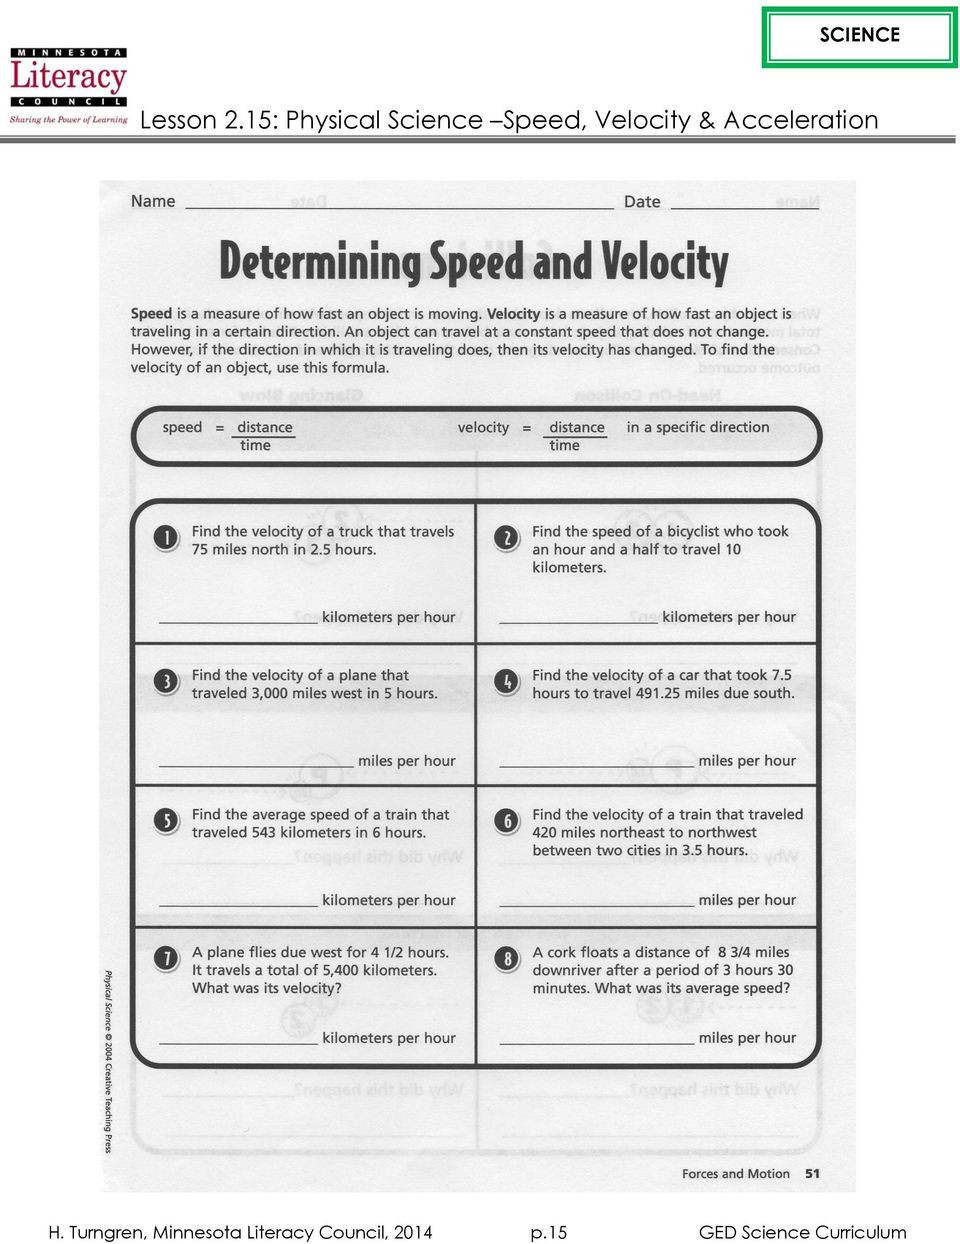 Determining Speed Velocity Worksheet Lesson 2 15 Physical Science Speed Velocity & Acceleration